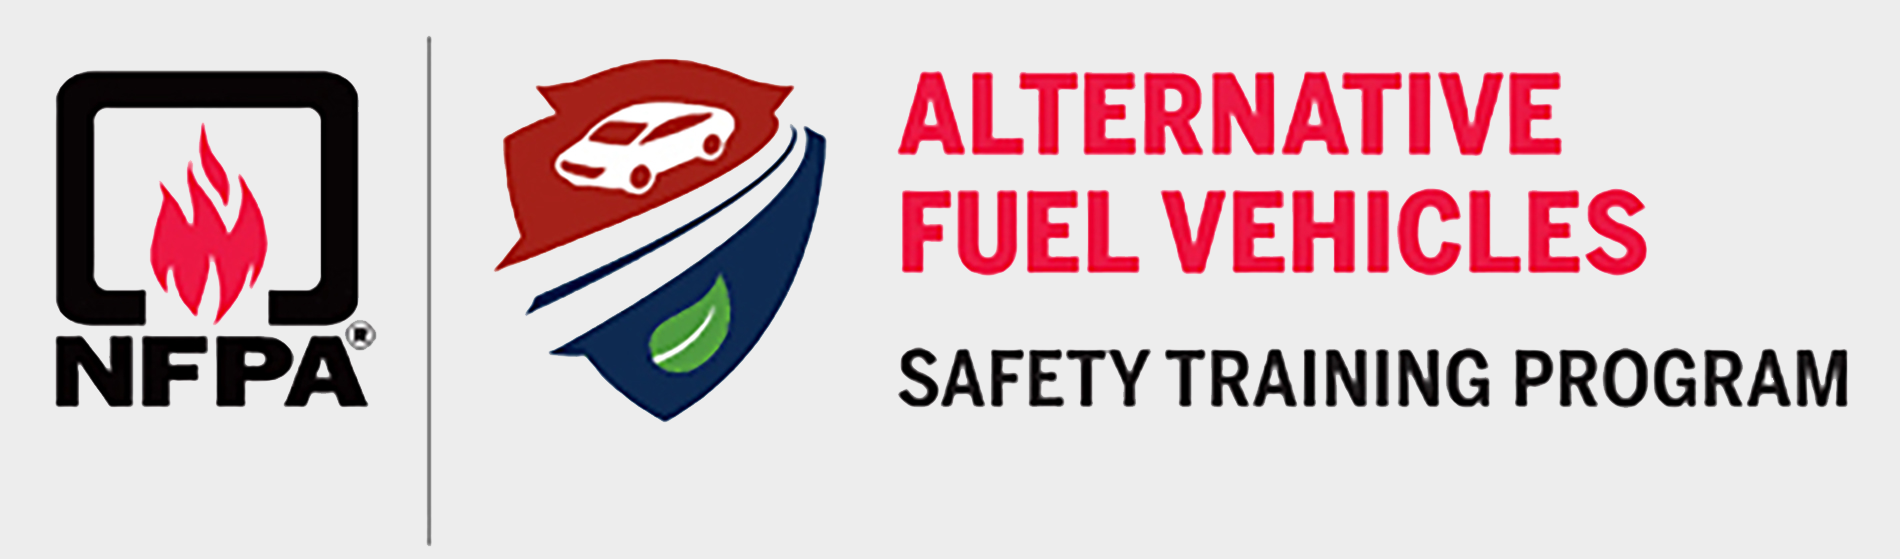 NFPA's Alternative Fuel Vehicle Safety Training Course: Train the Trainer